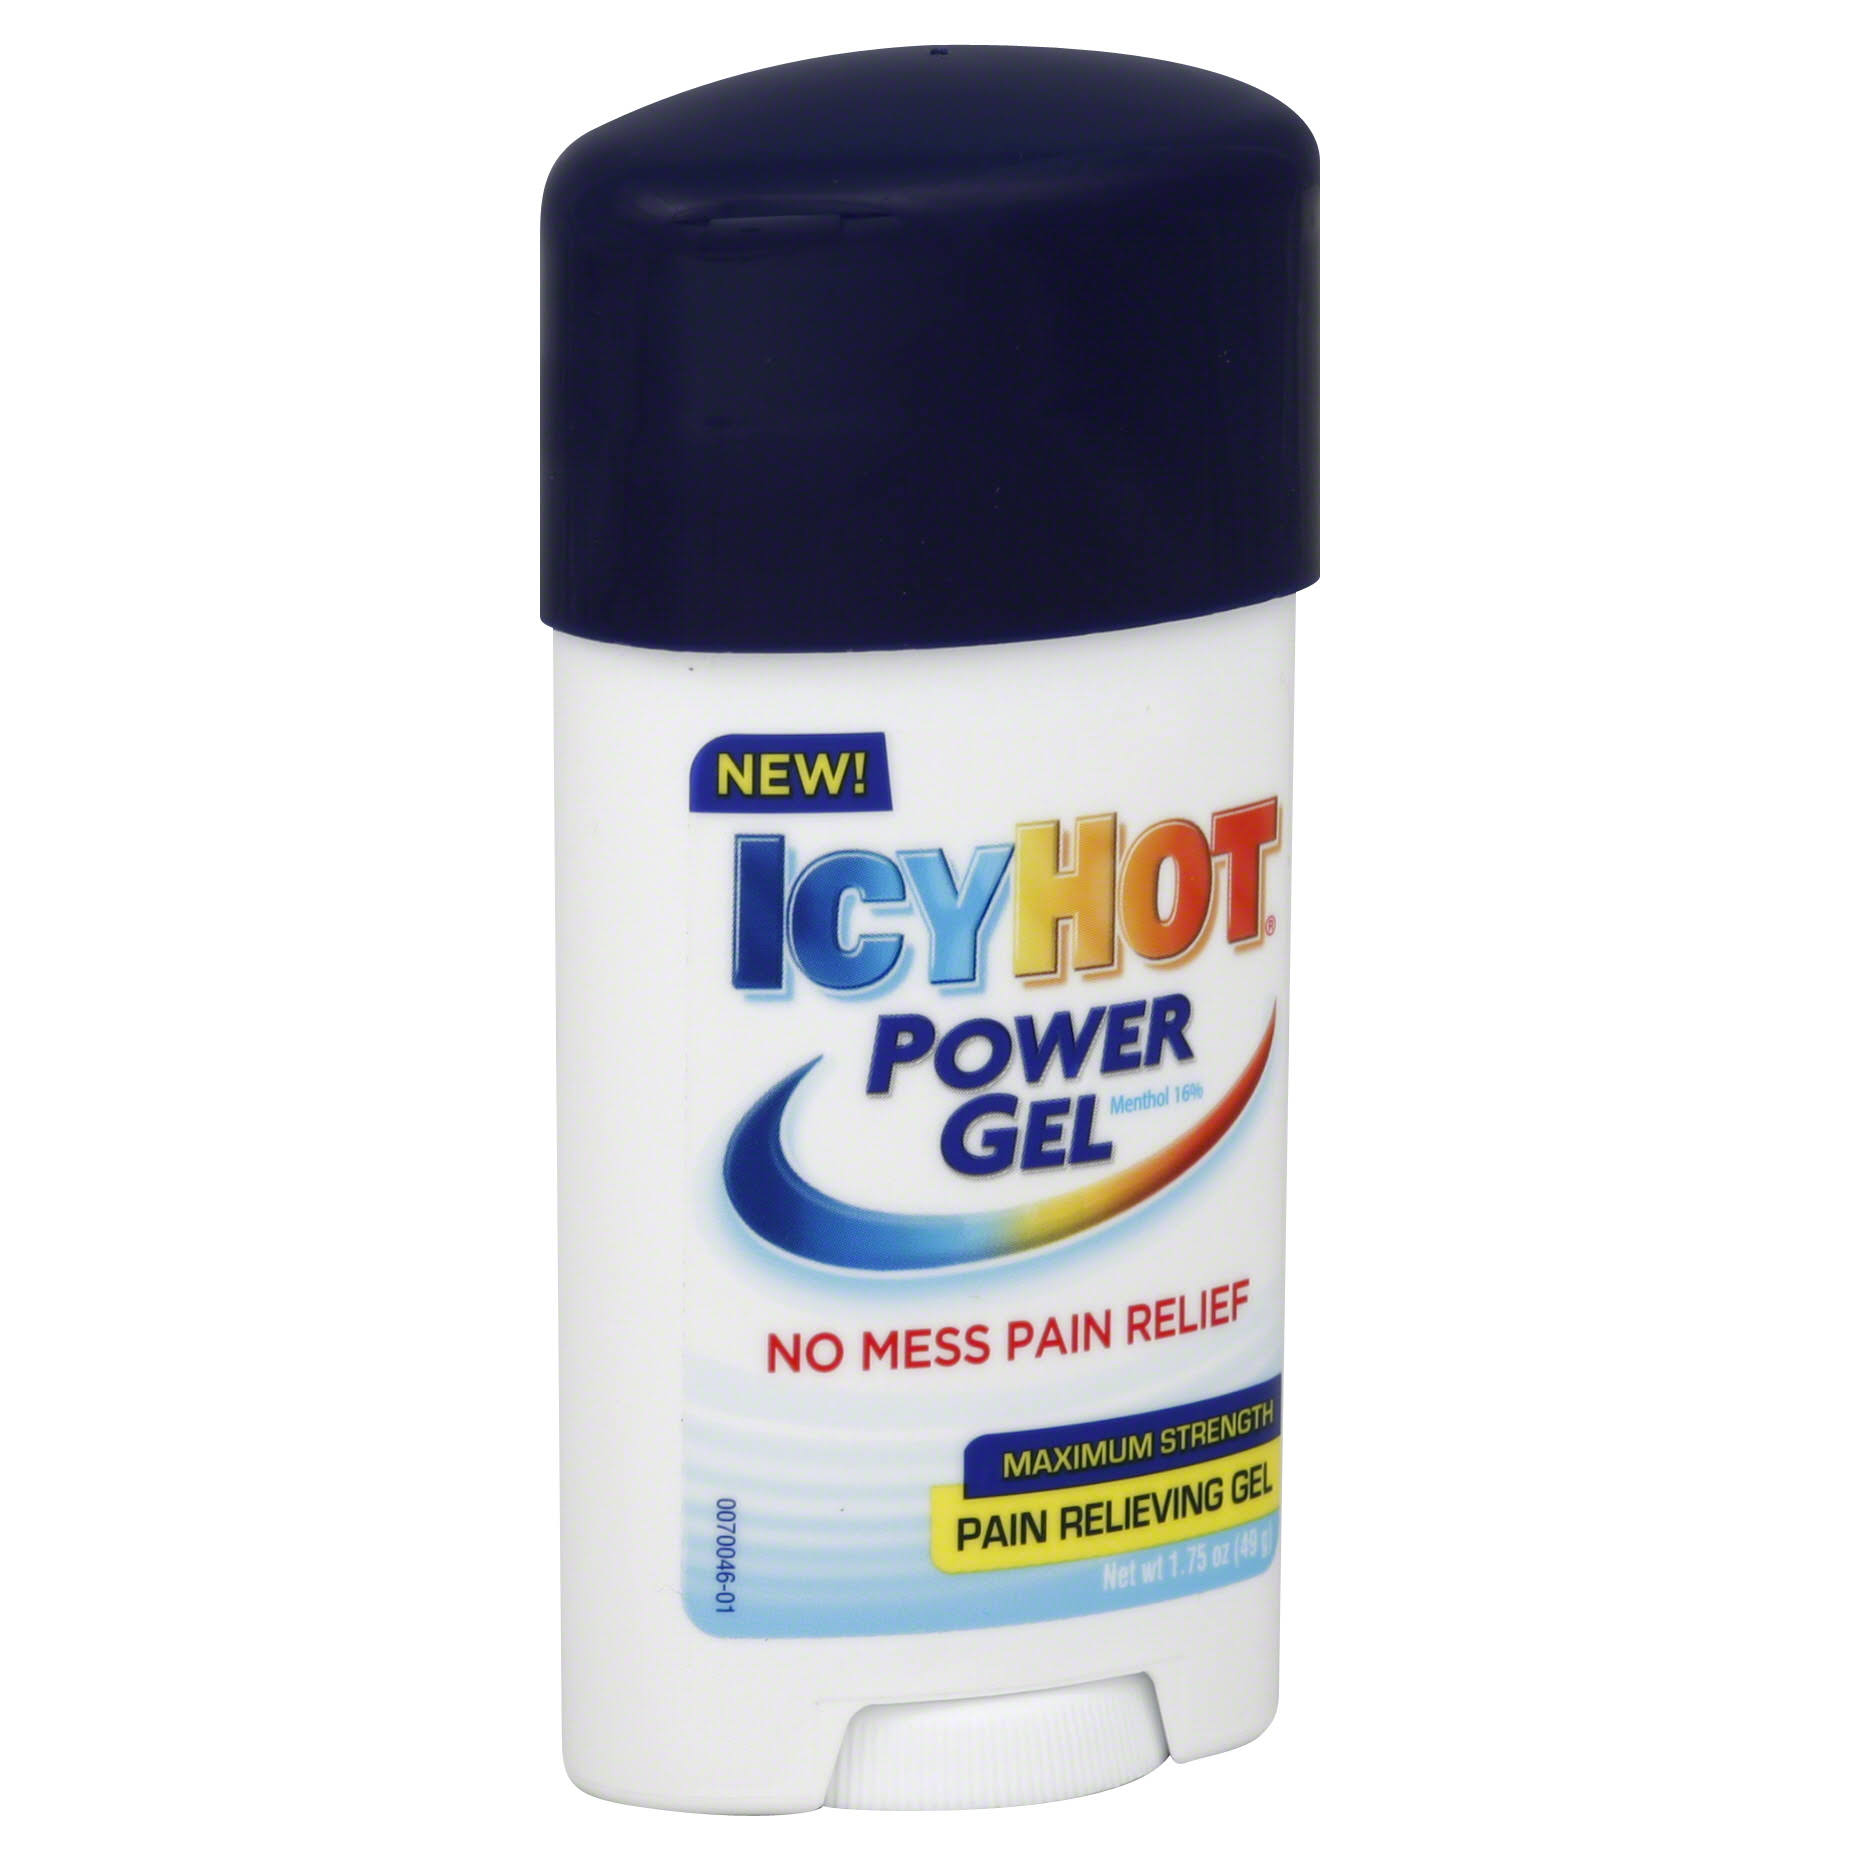 Icy Hot Power Gel Maximum Strength Pain Relieving Gel - 1.75oz